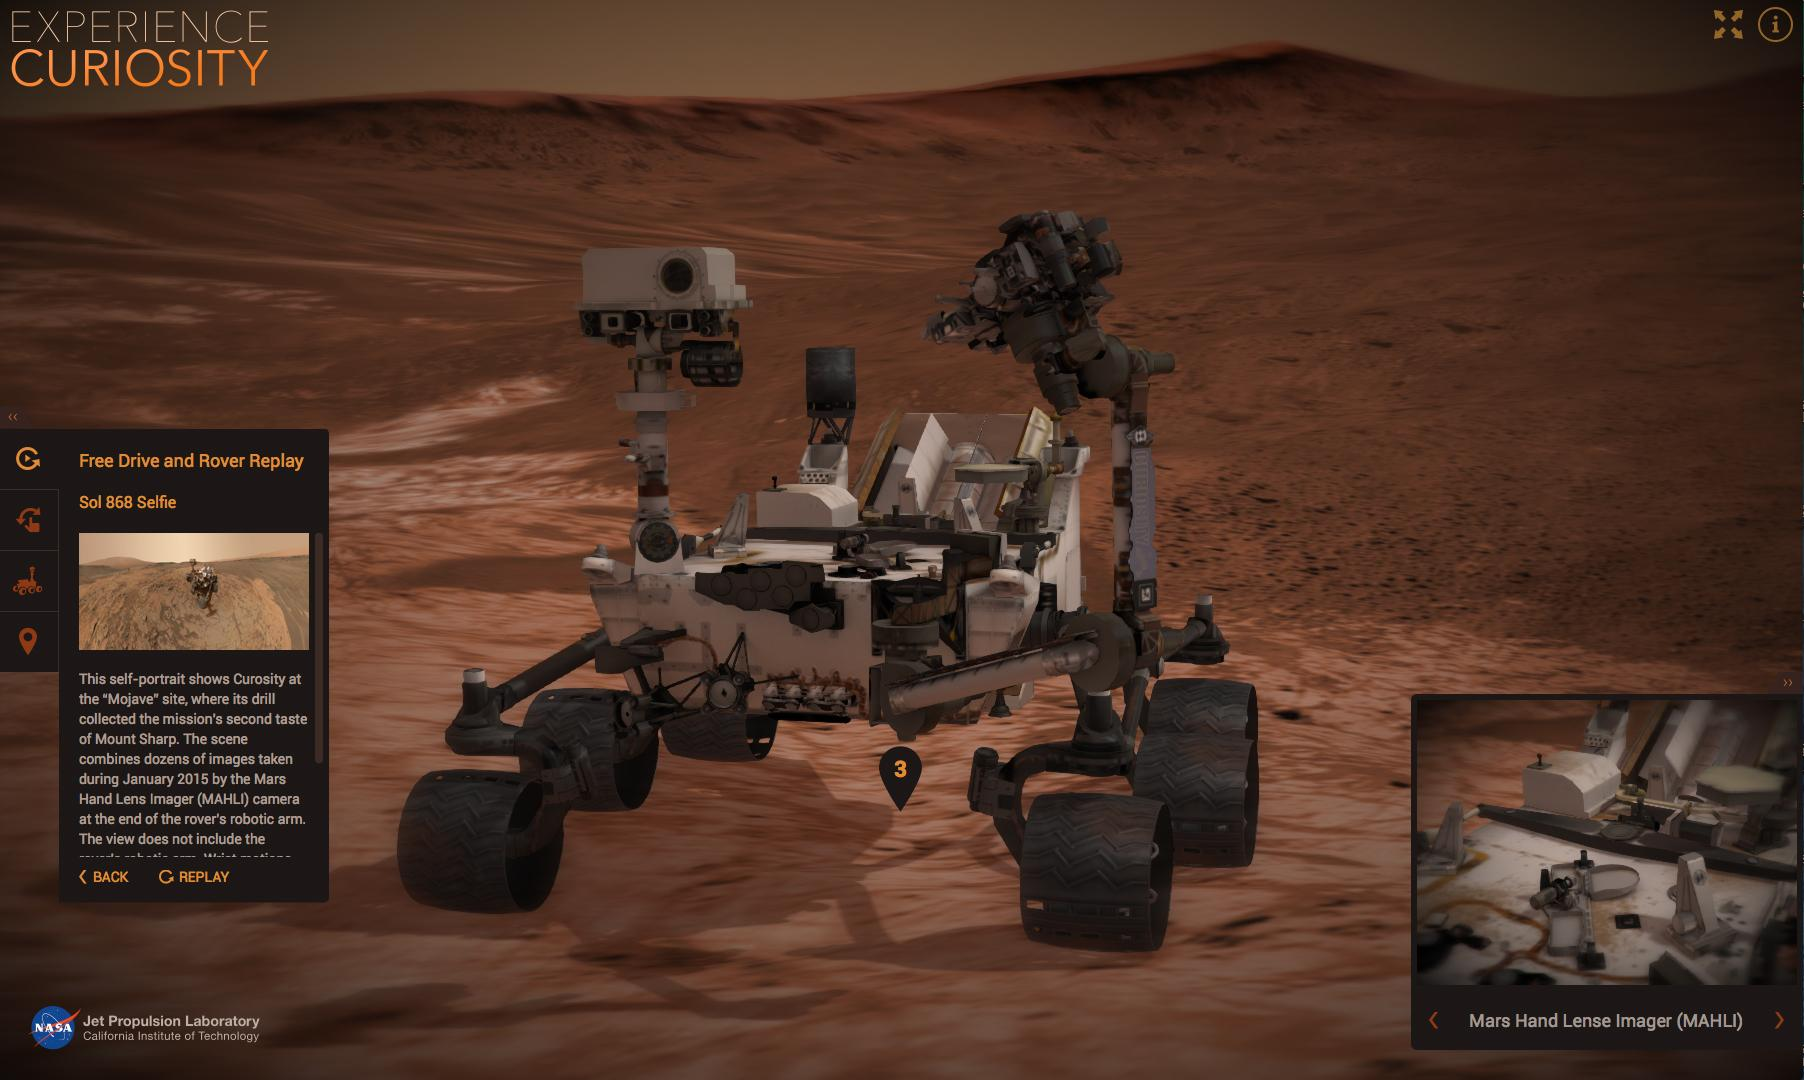 mars curiosity landing simulation - photo #17